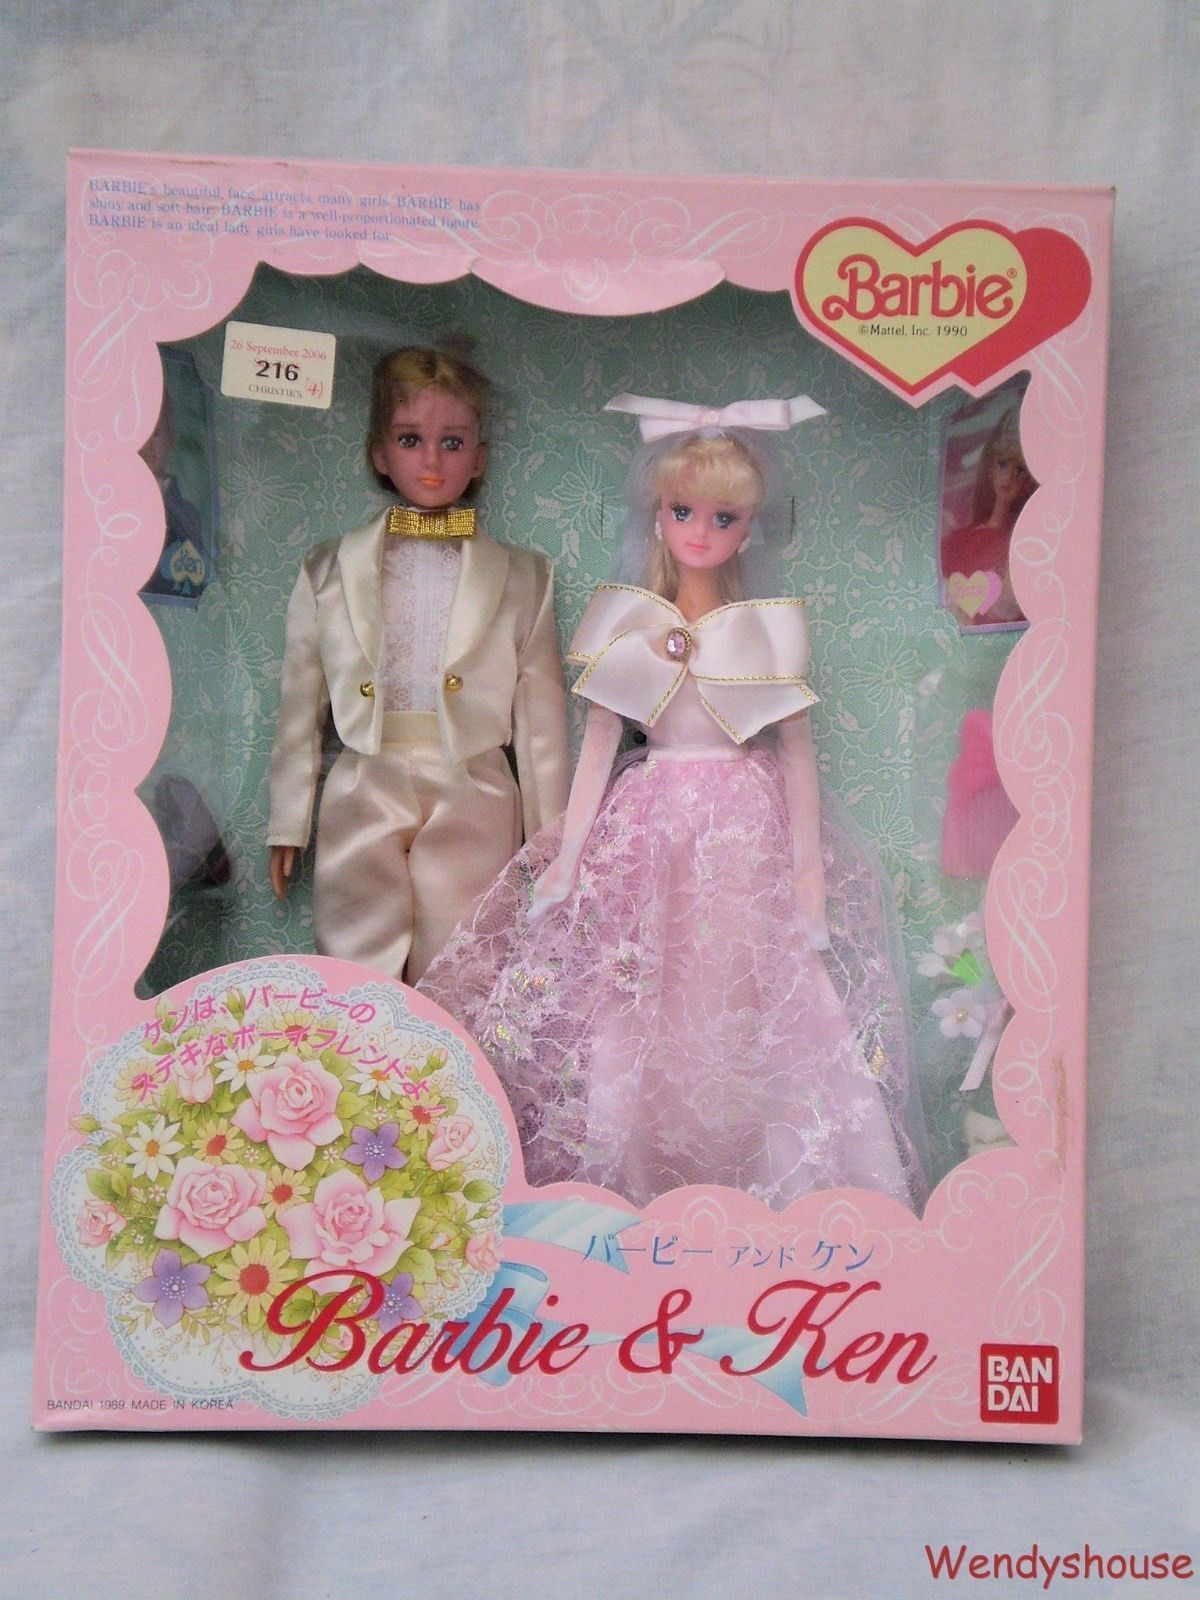 49 99 Rare Boxed Mattel Bandai Barbie Ken Wedding Set Made In Korea Free Uk